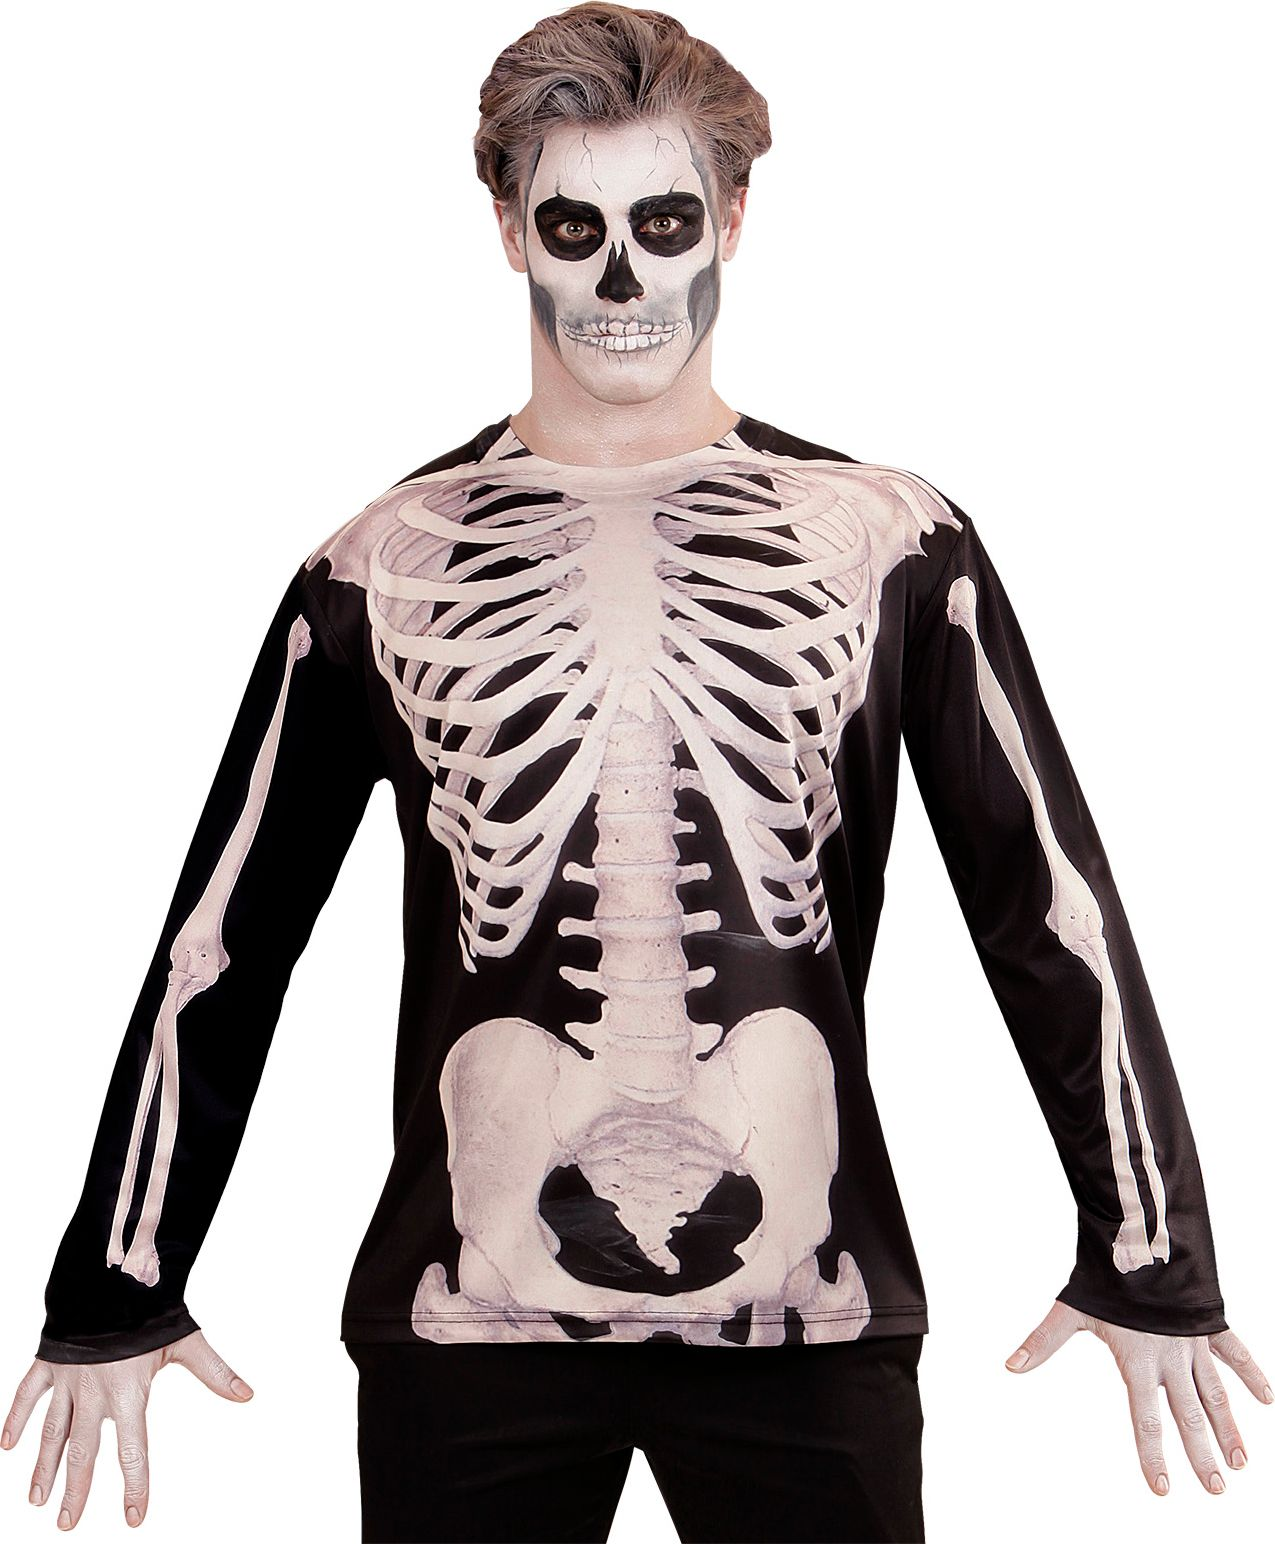 Skelet shirt halloween